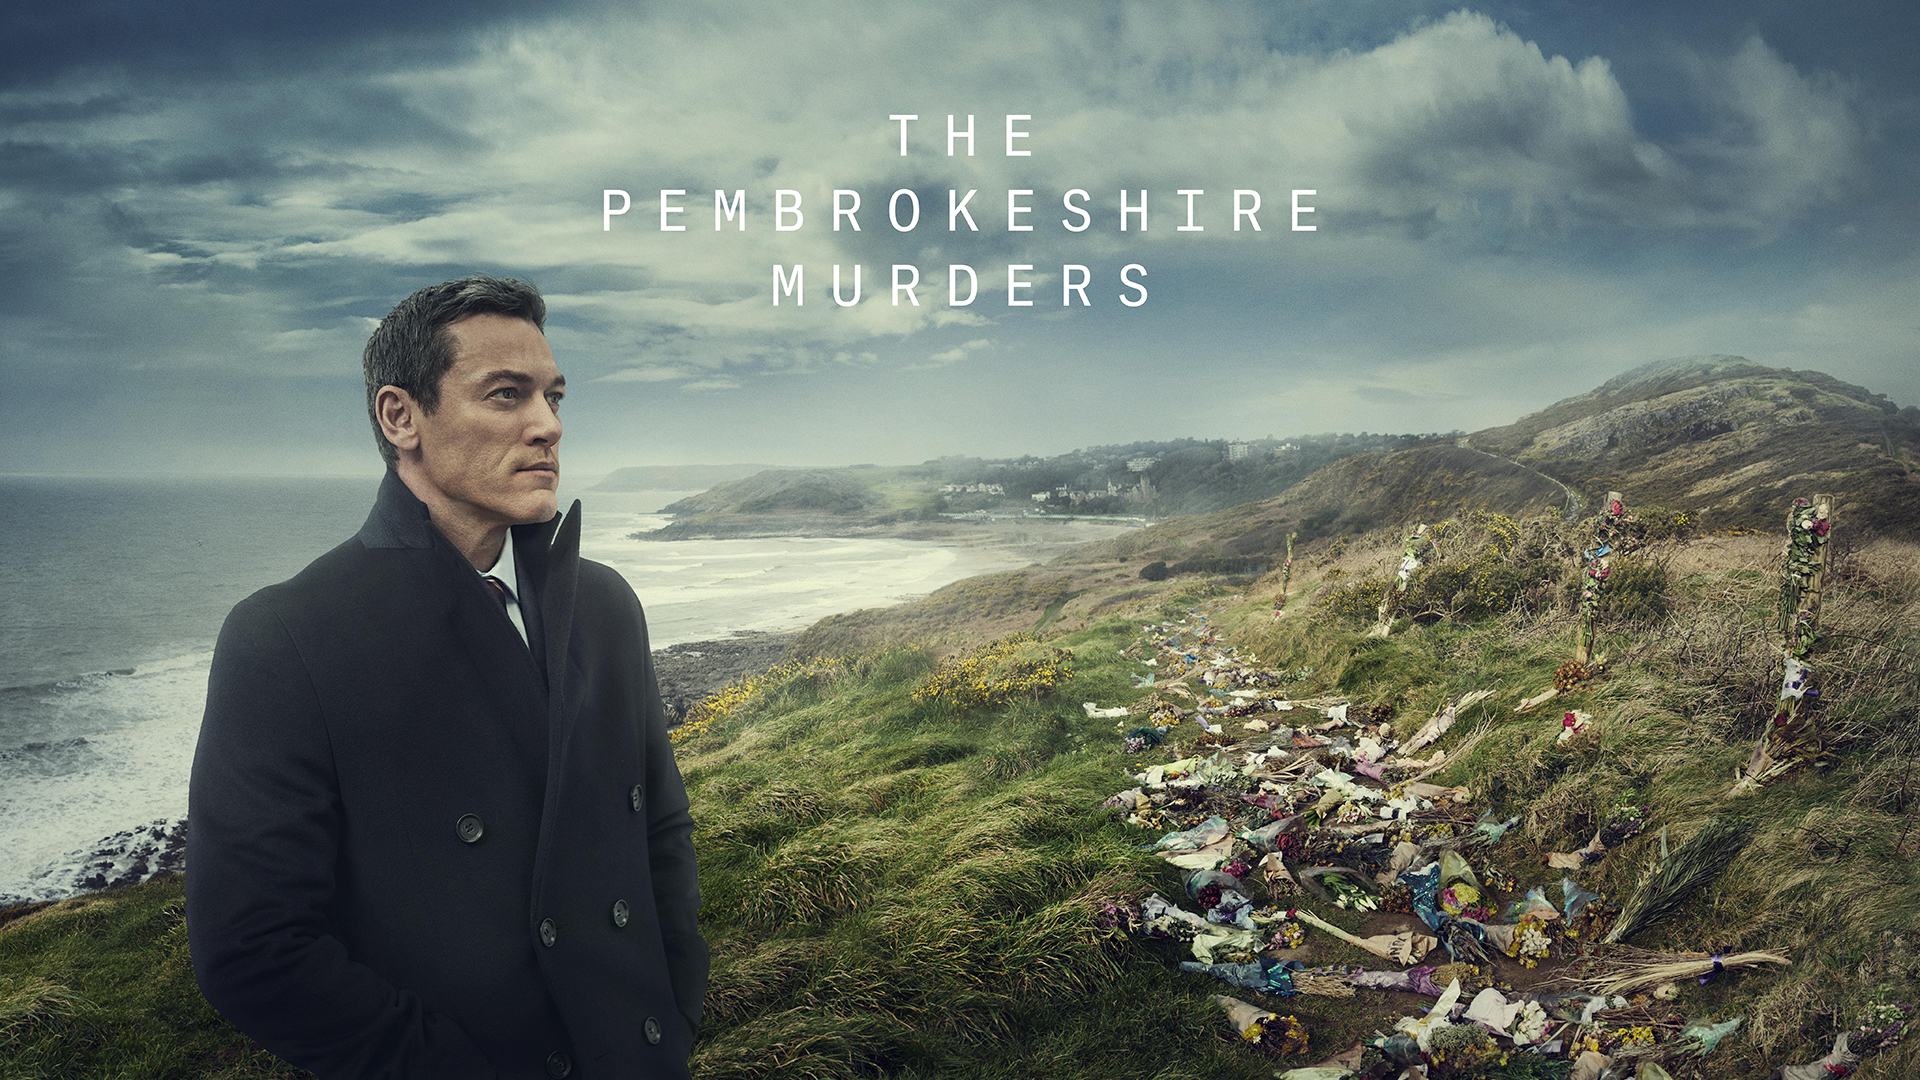 The Pembrokeshire Murders — When Fiction Flirts With Documentary